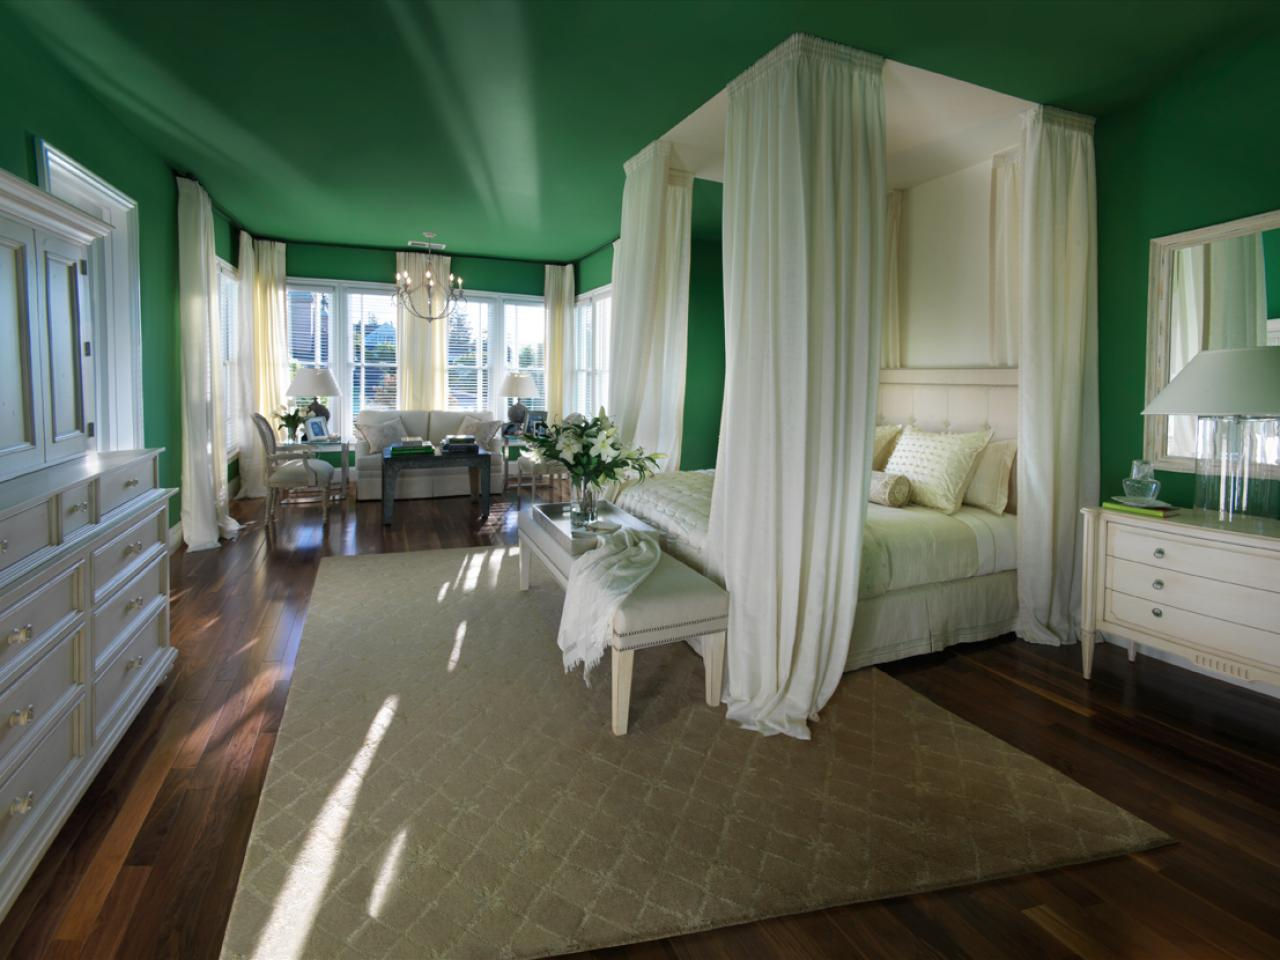 Green Painted Wall and Ceiling Completing Elegant Bedroom with White DIY Canopy Bed and Long Bench